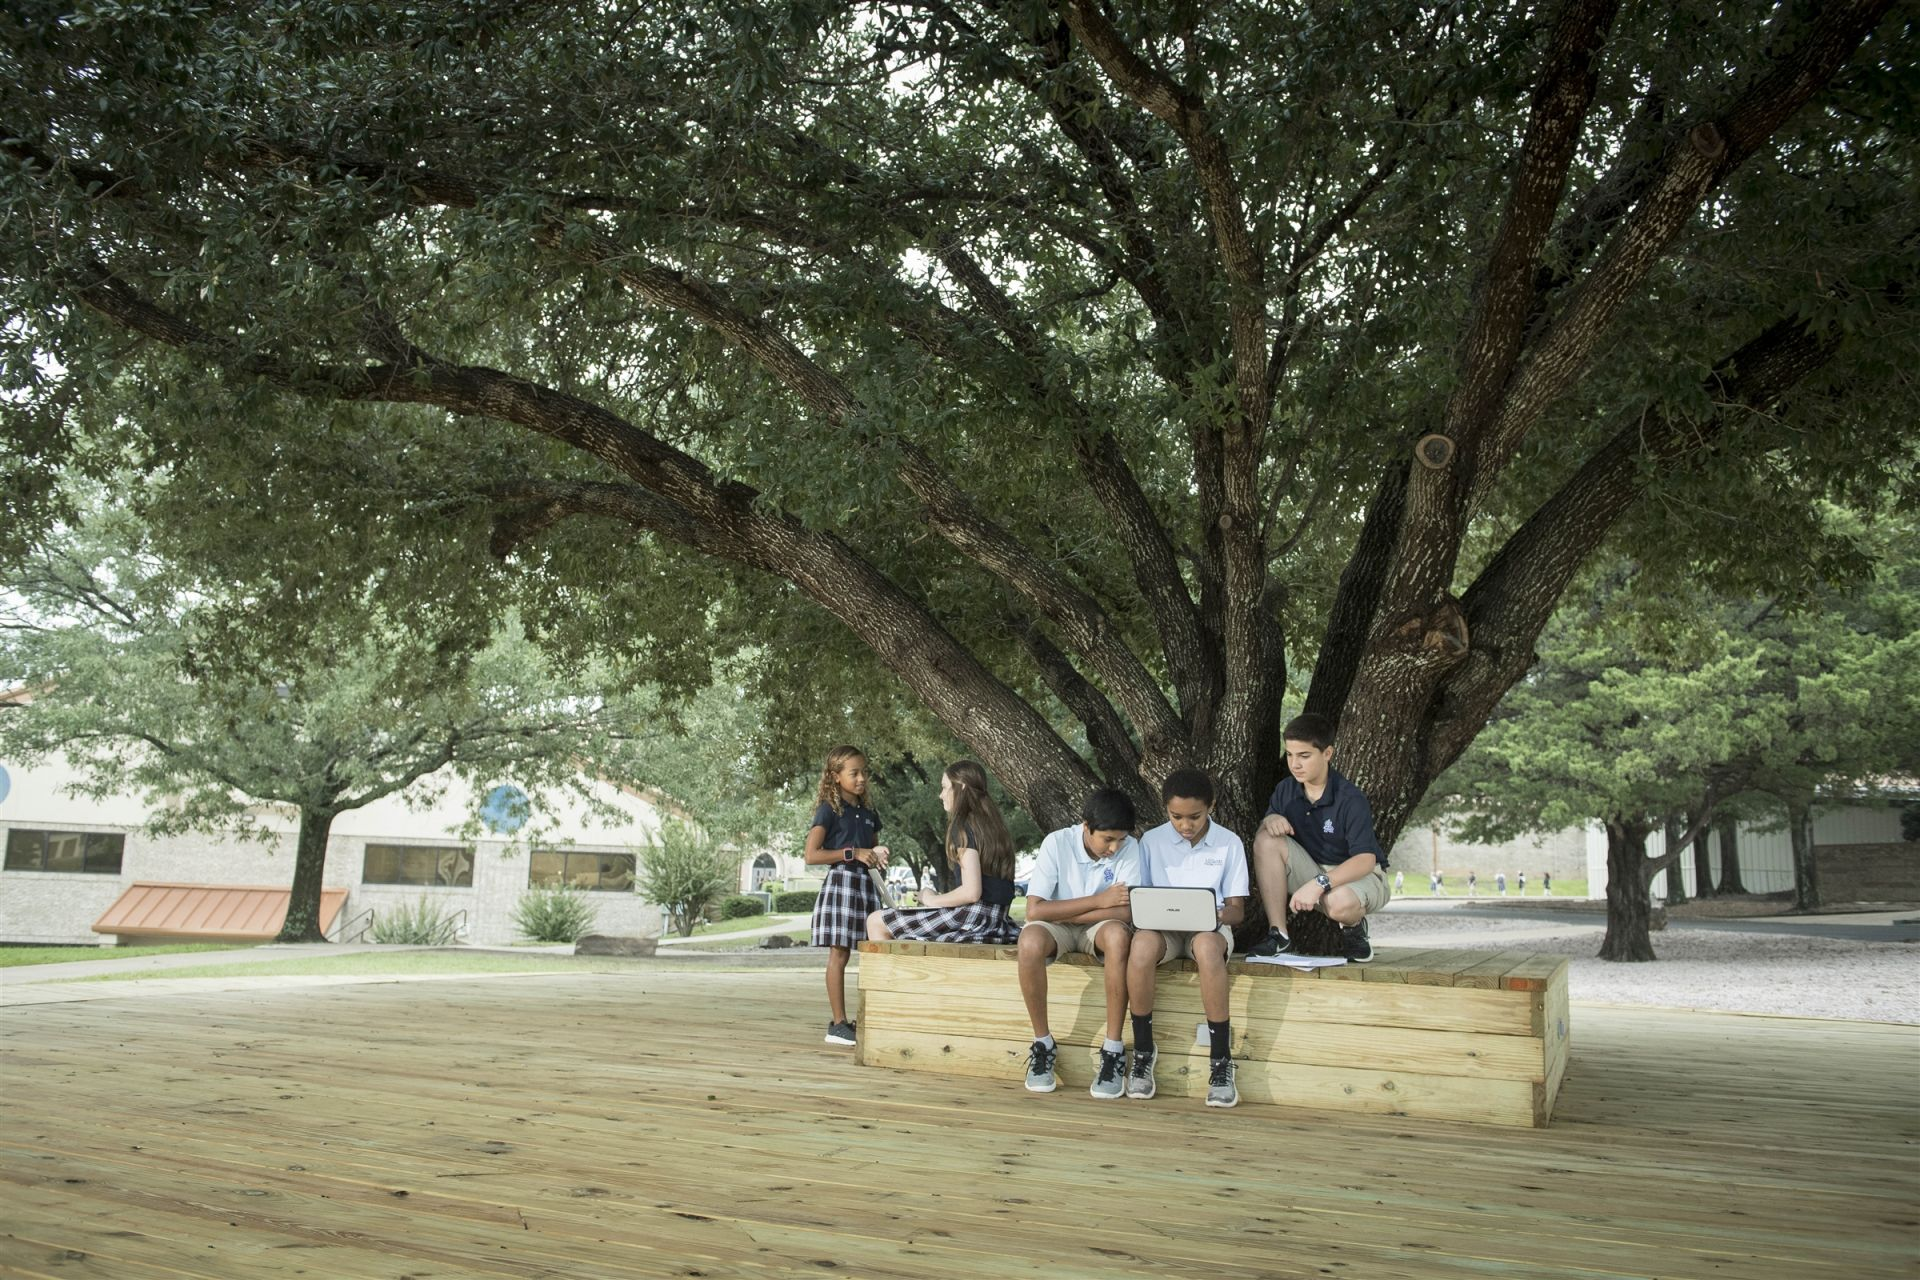 The tree deck is the center of campus. This space gives students a shaded place to study.